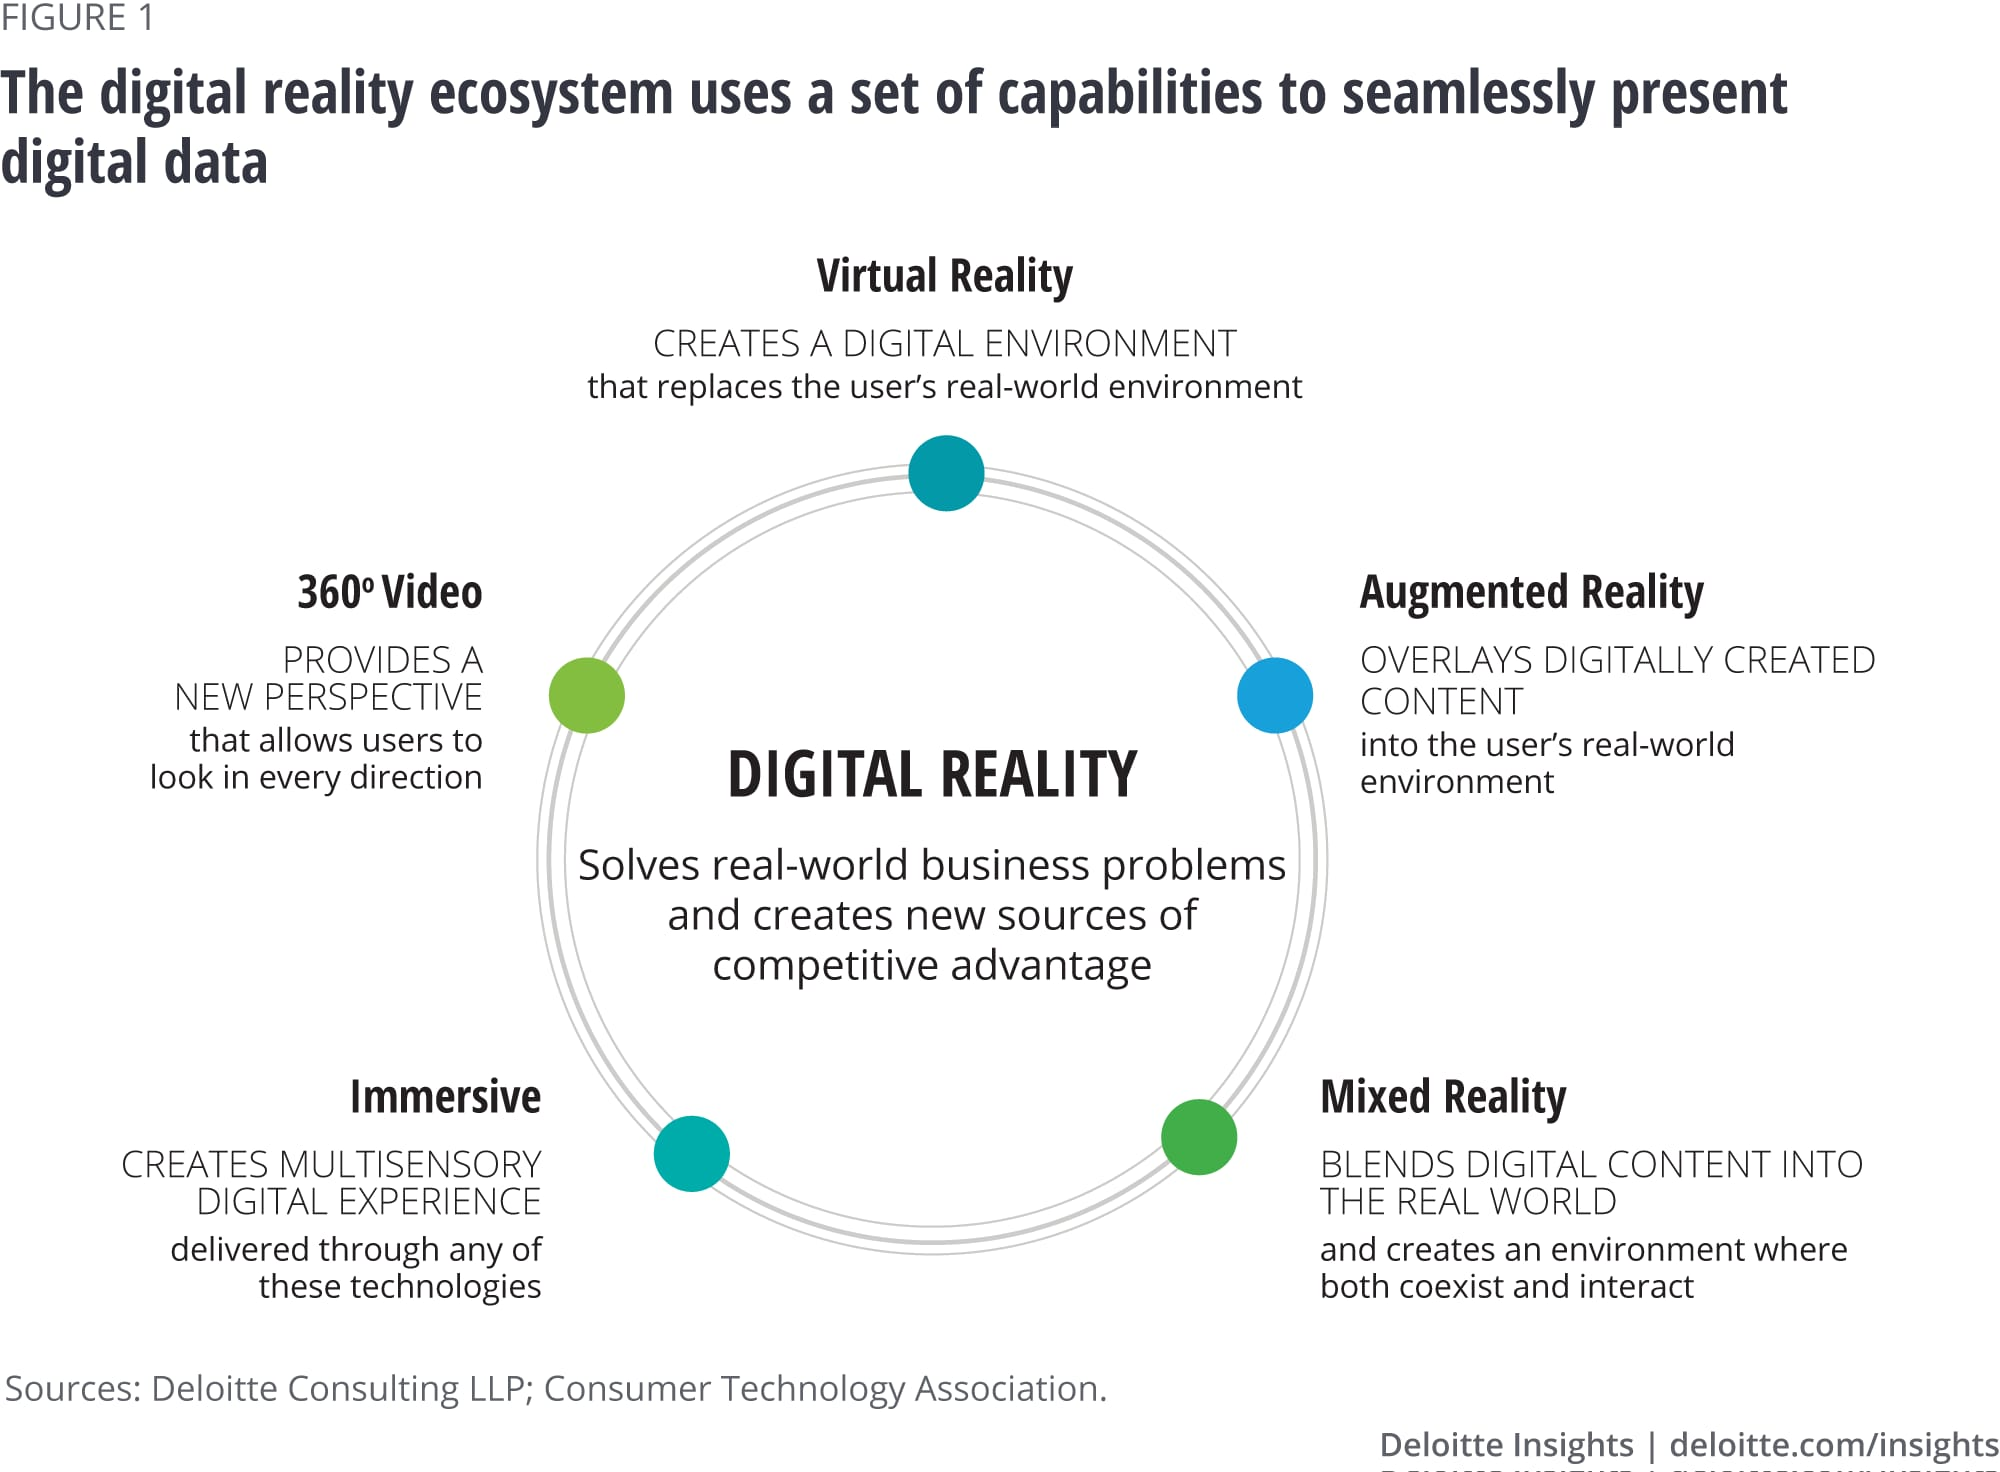 Digital reality can seamlessly present digital data in many different ways